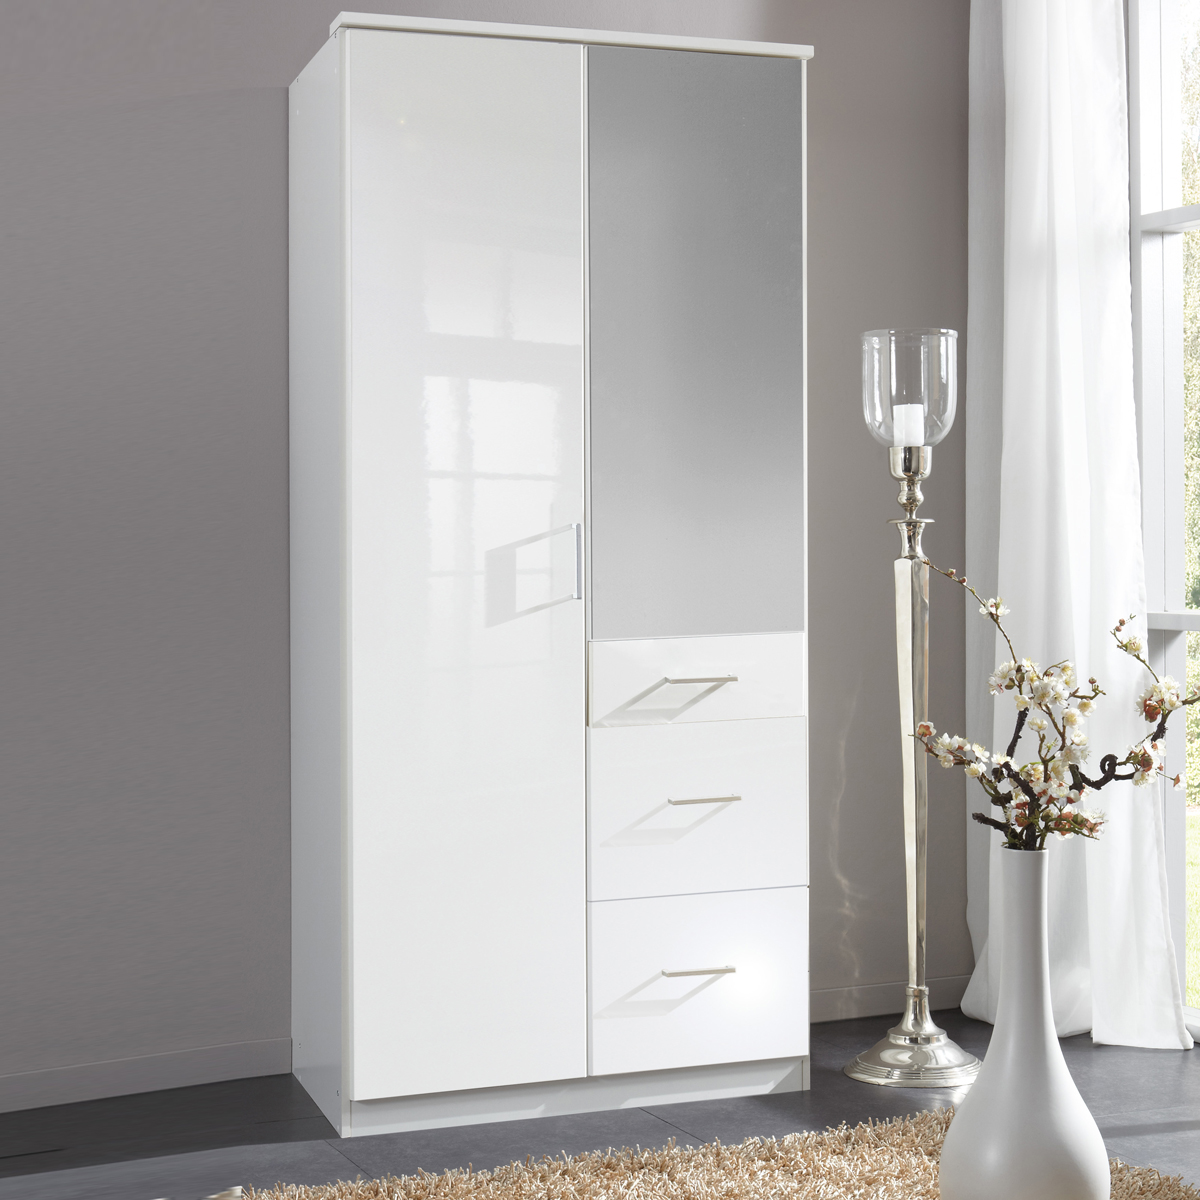 kleiderschrank clack dreht renschrank in hochglanz wei alpinwei spiegel 90 cm ebay. Black Bedroom Furniture Sets. Home Design Ideas